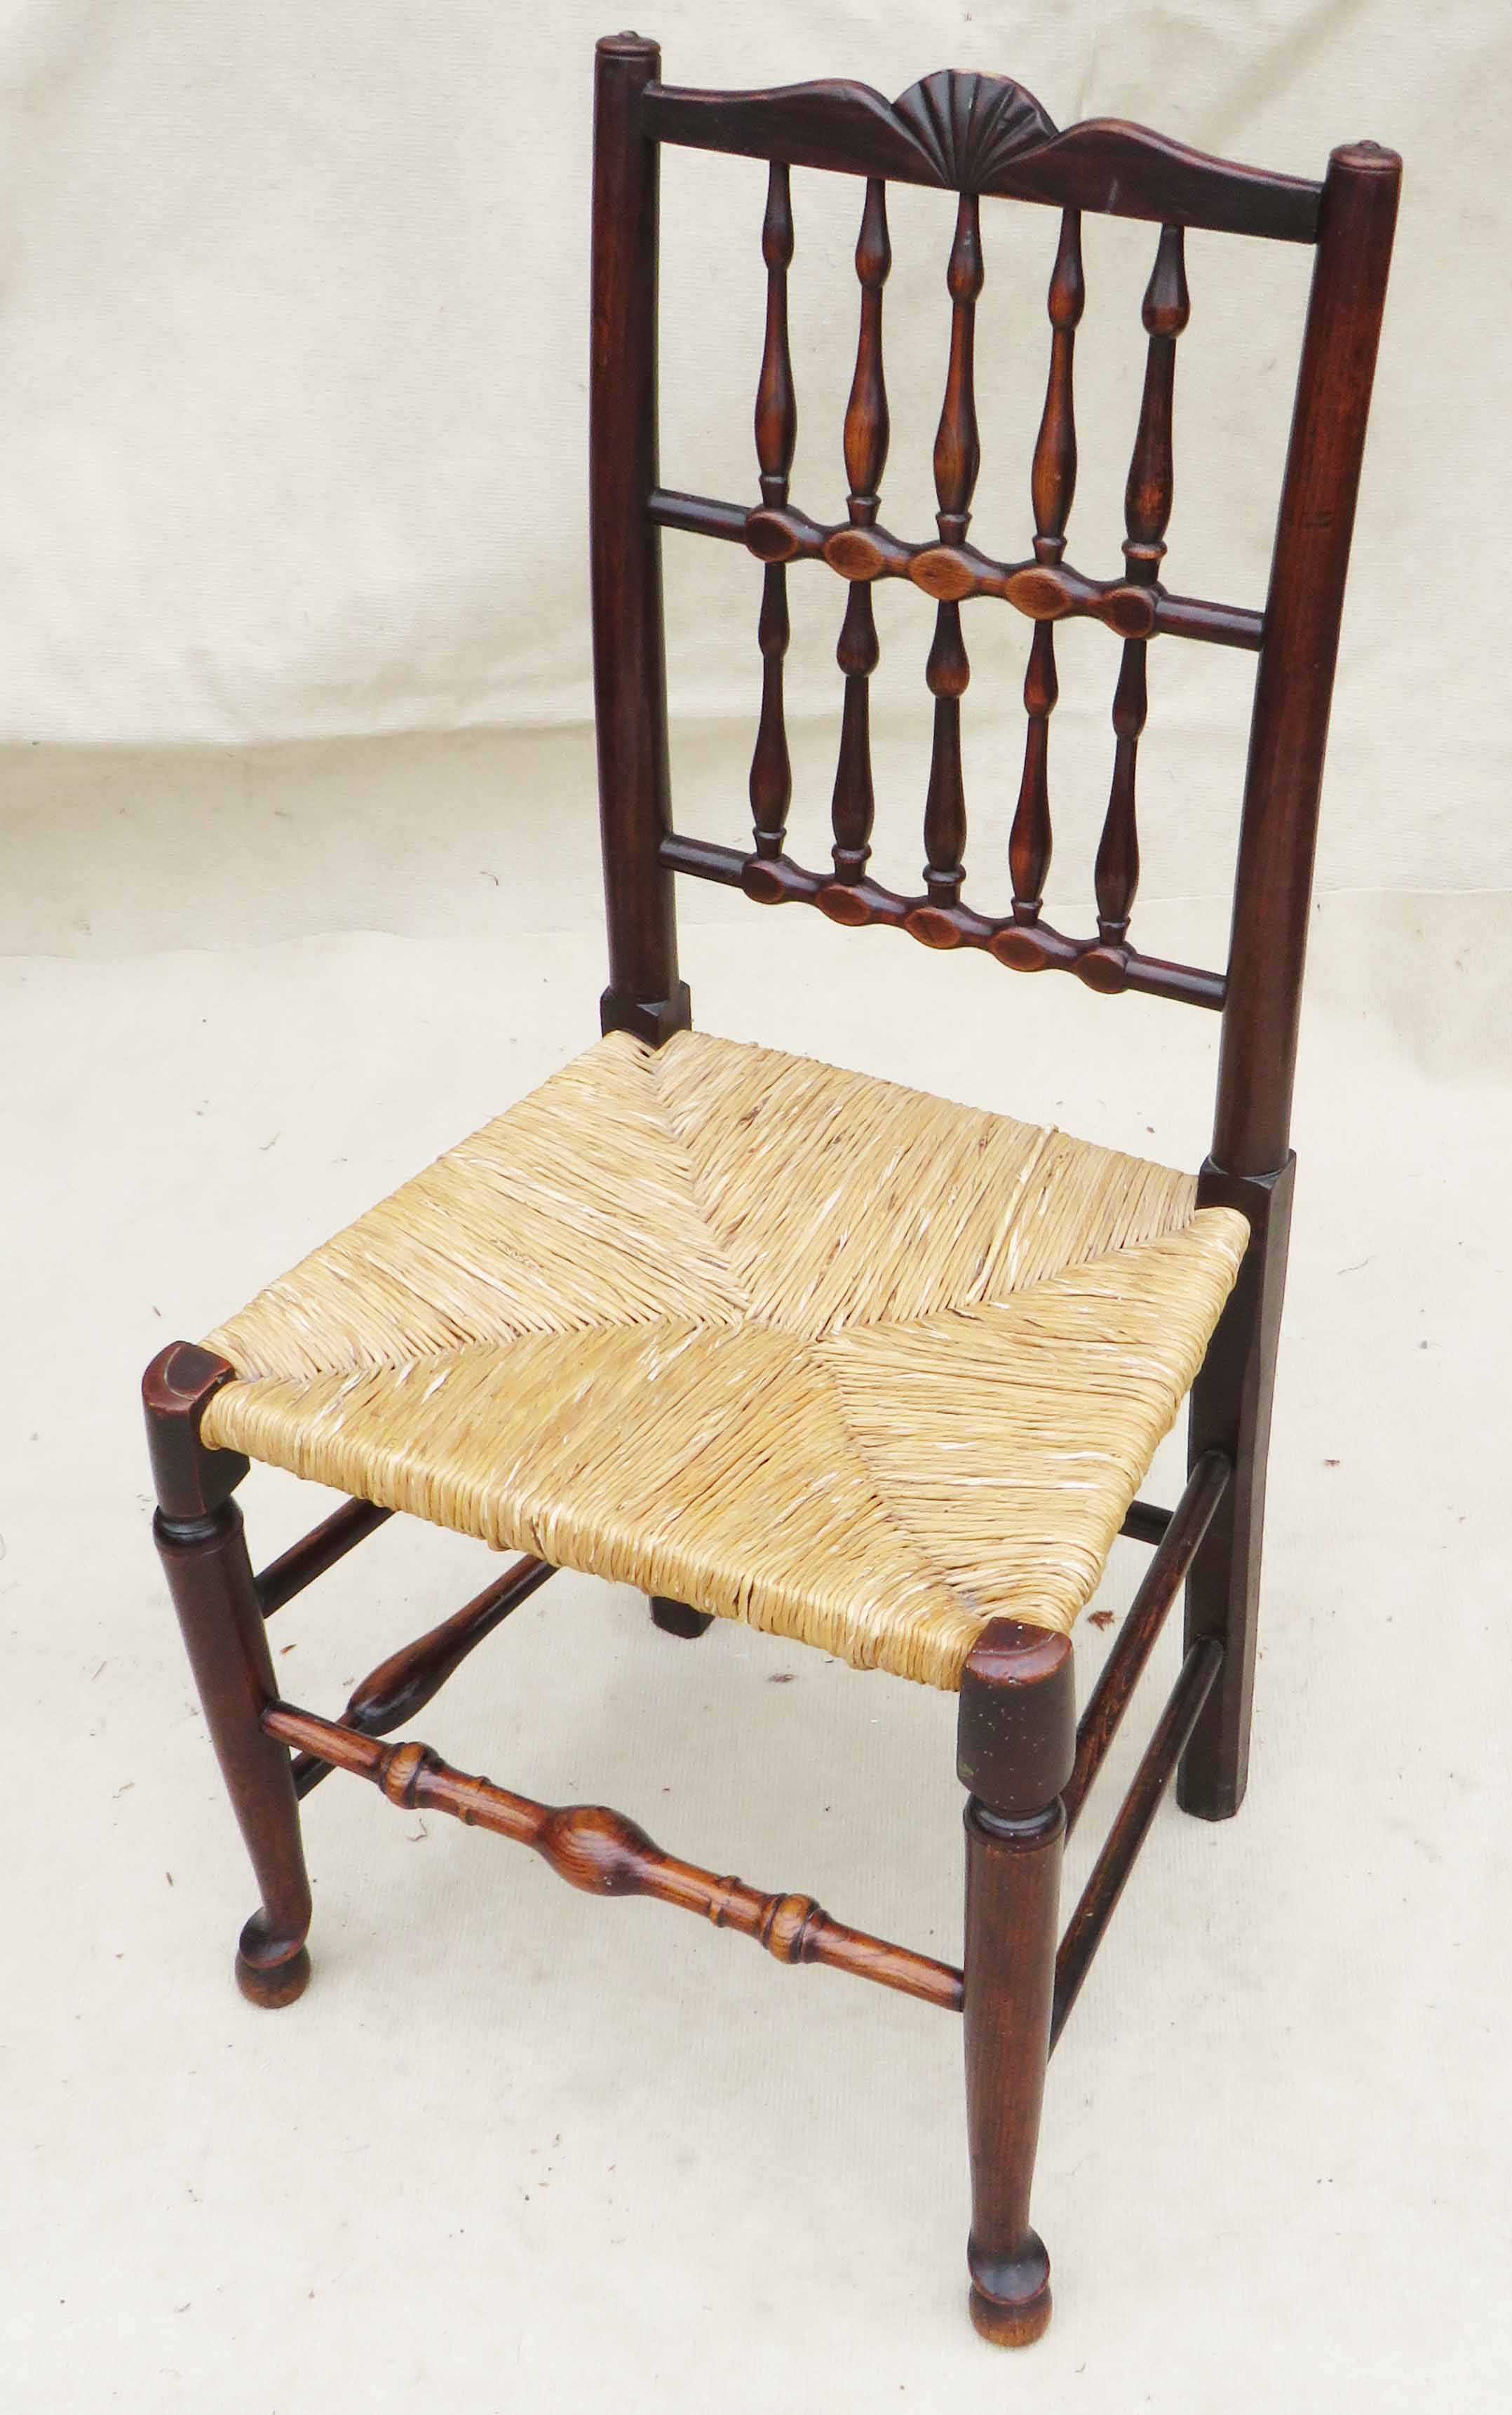 Matched Set Of 8 Spindle Back Dining Chairs, Early 19th Century - Image 5 of 12